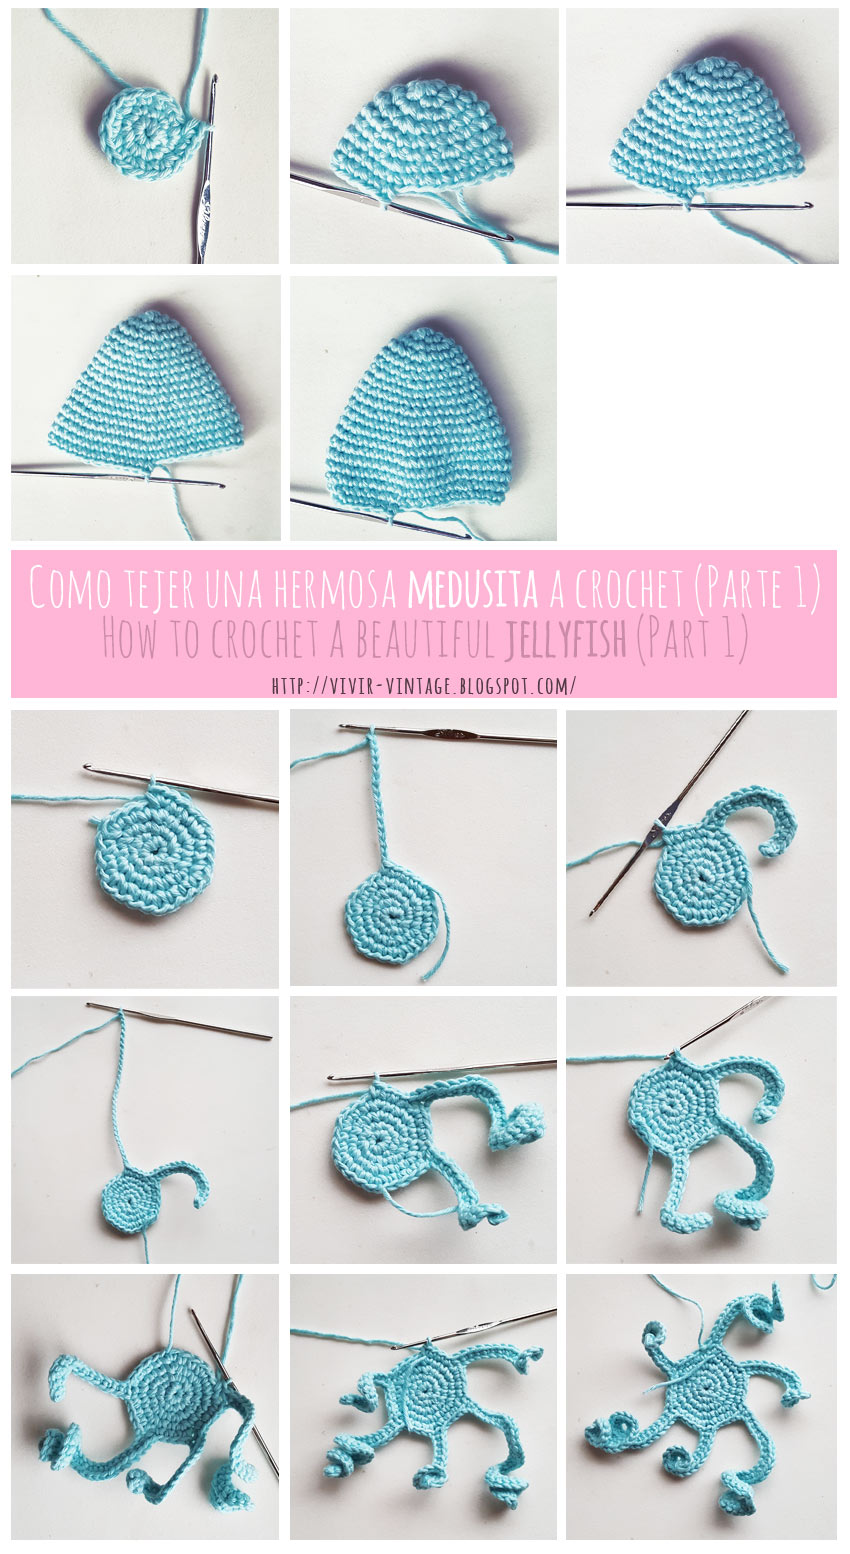 amigurumi jellyfish step by step